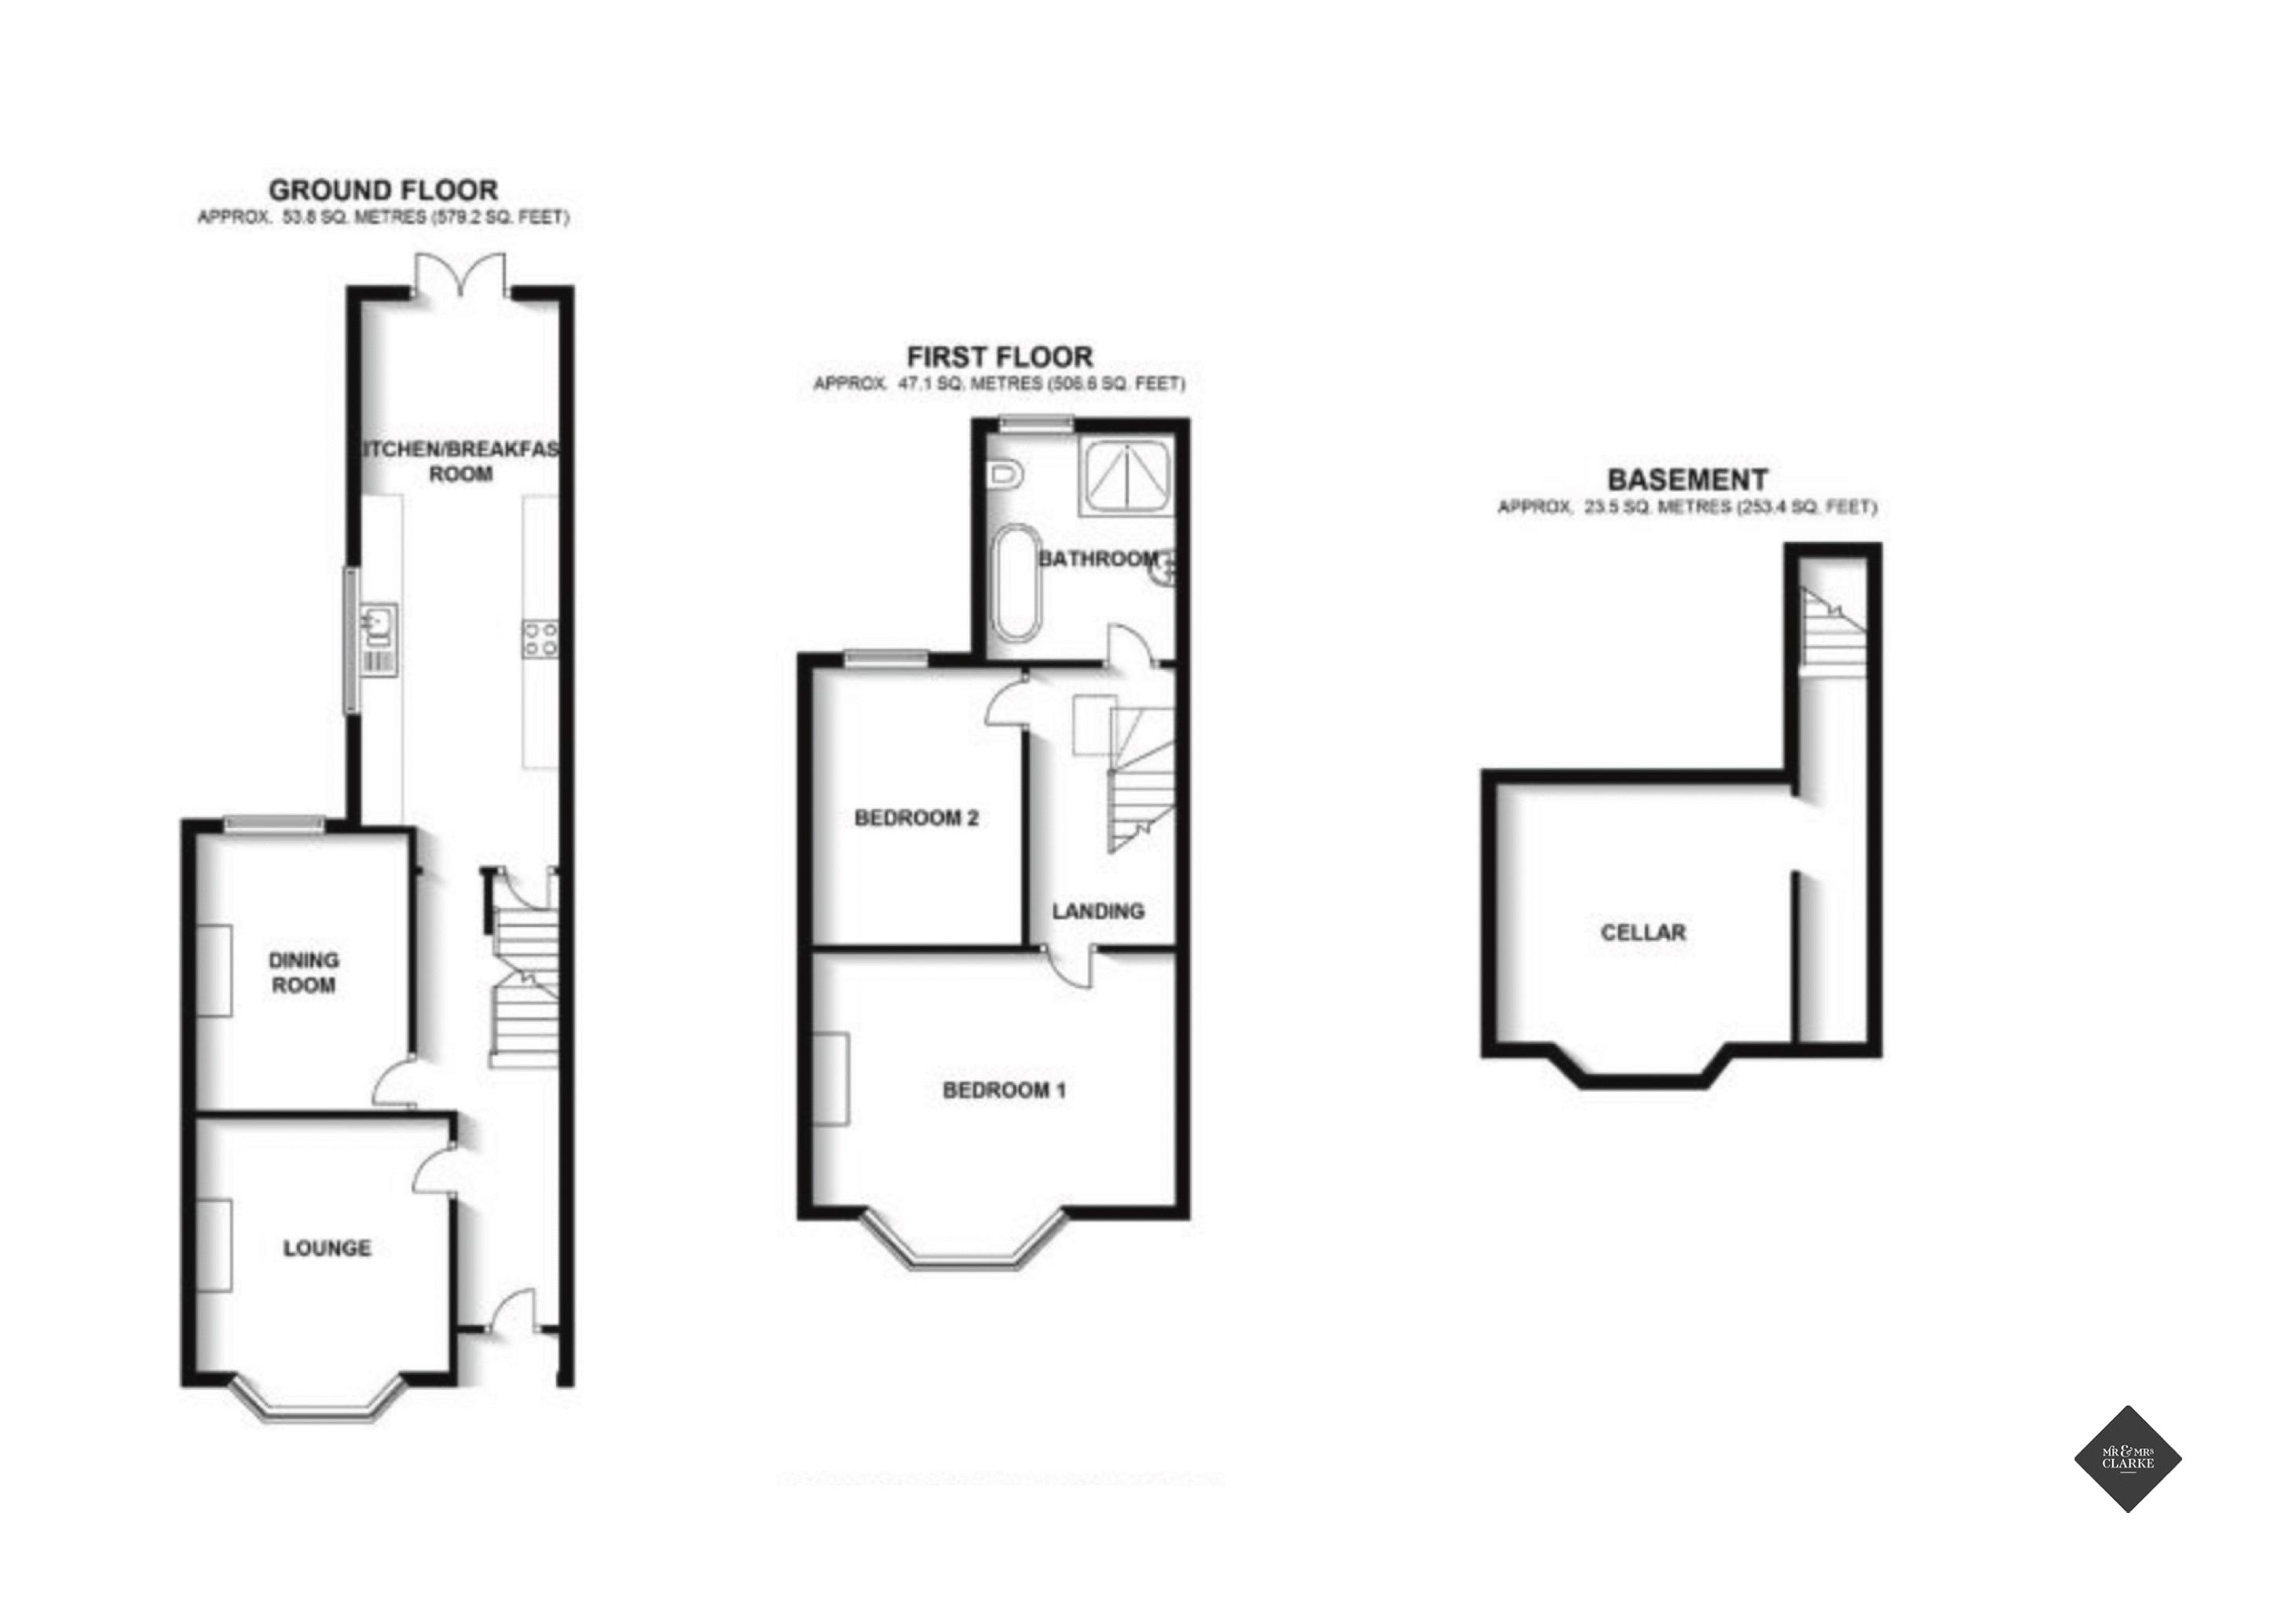 Plymouth Place, Leamington Spa. Floorplan.